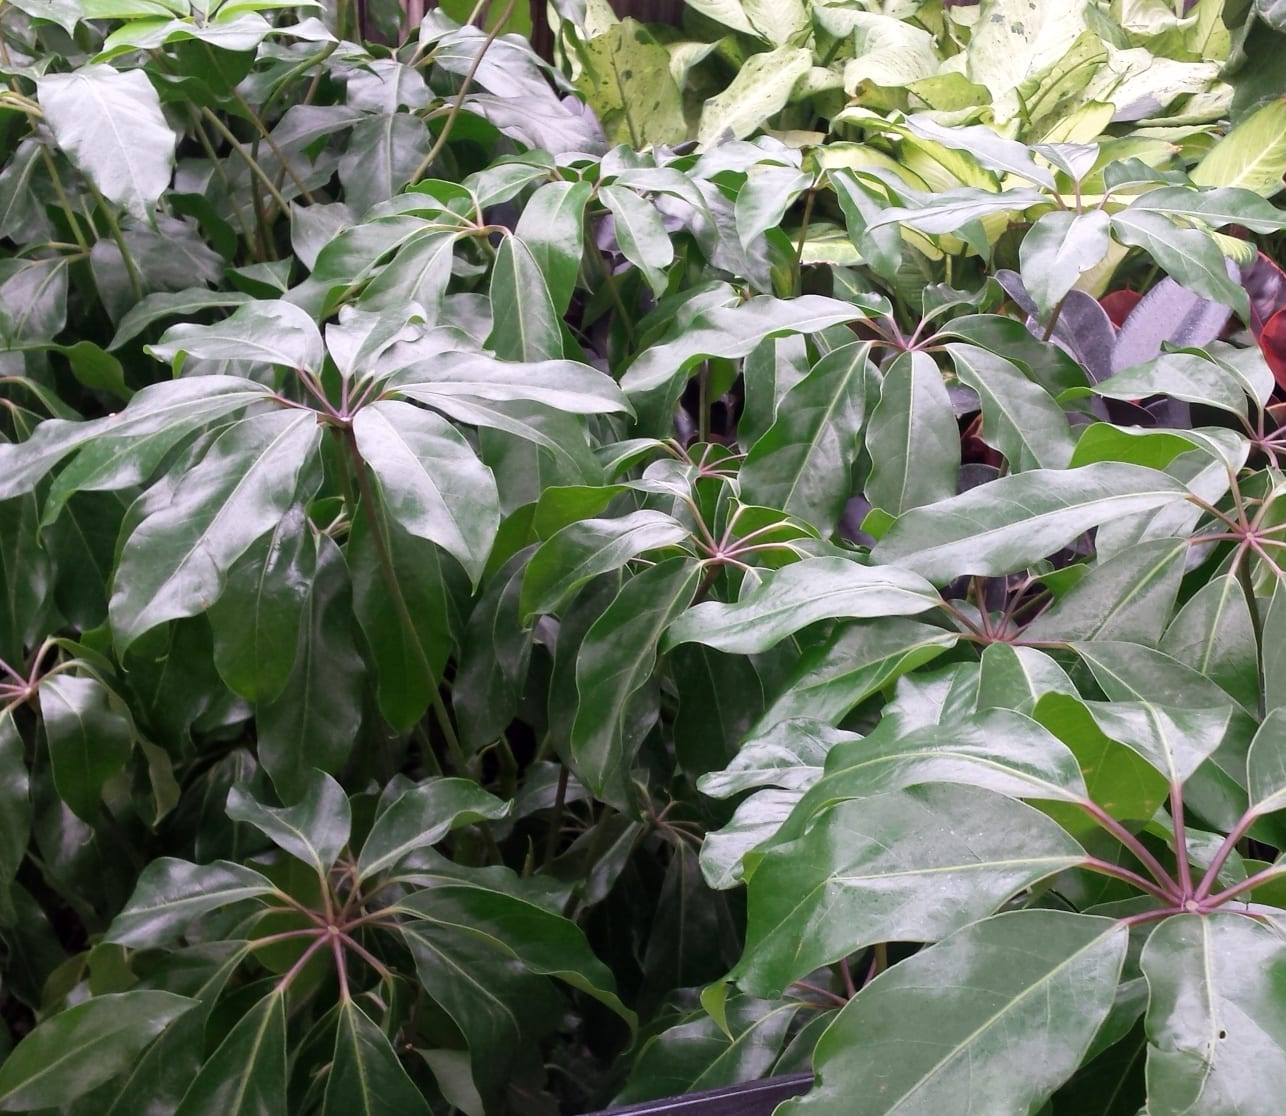 schefflera plants in greenhouse at City Floral